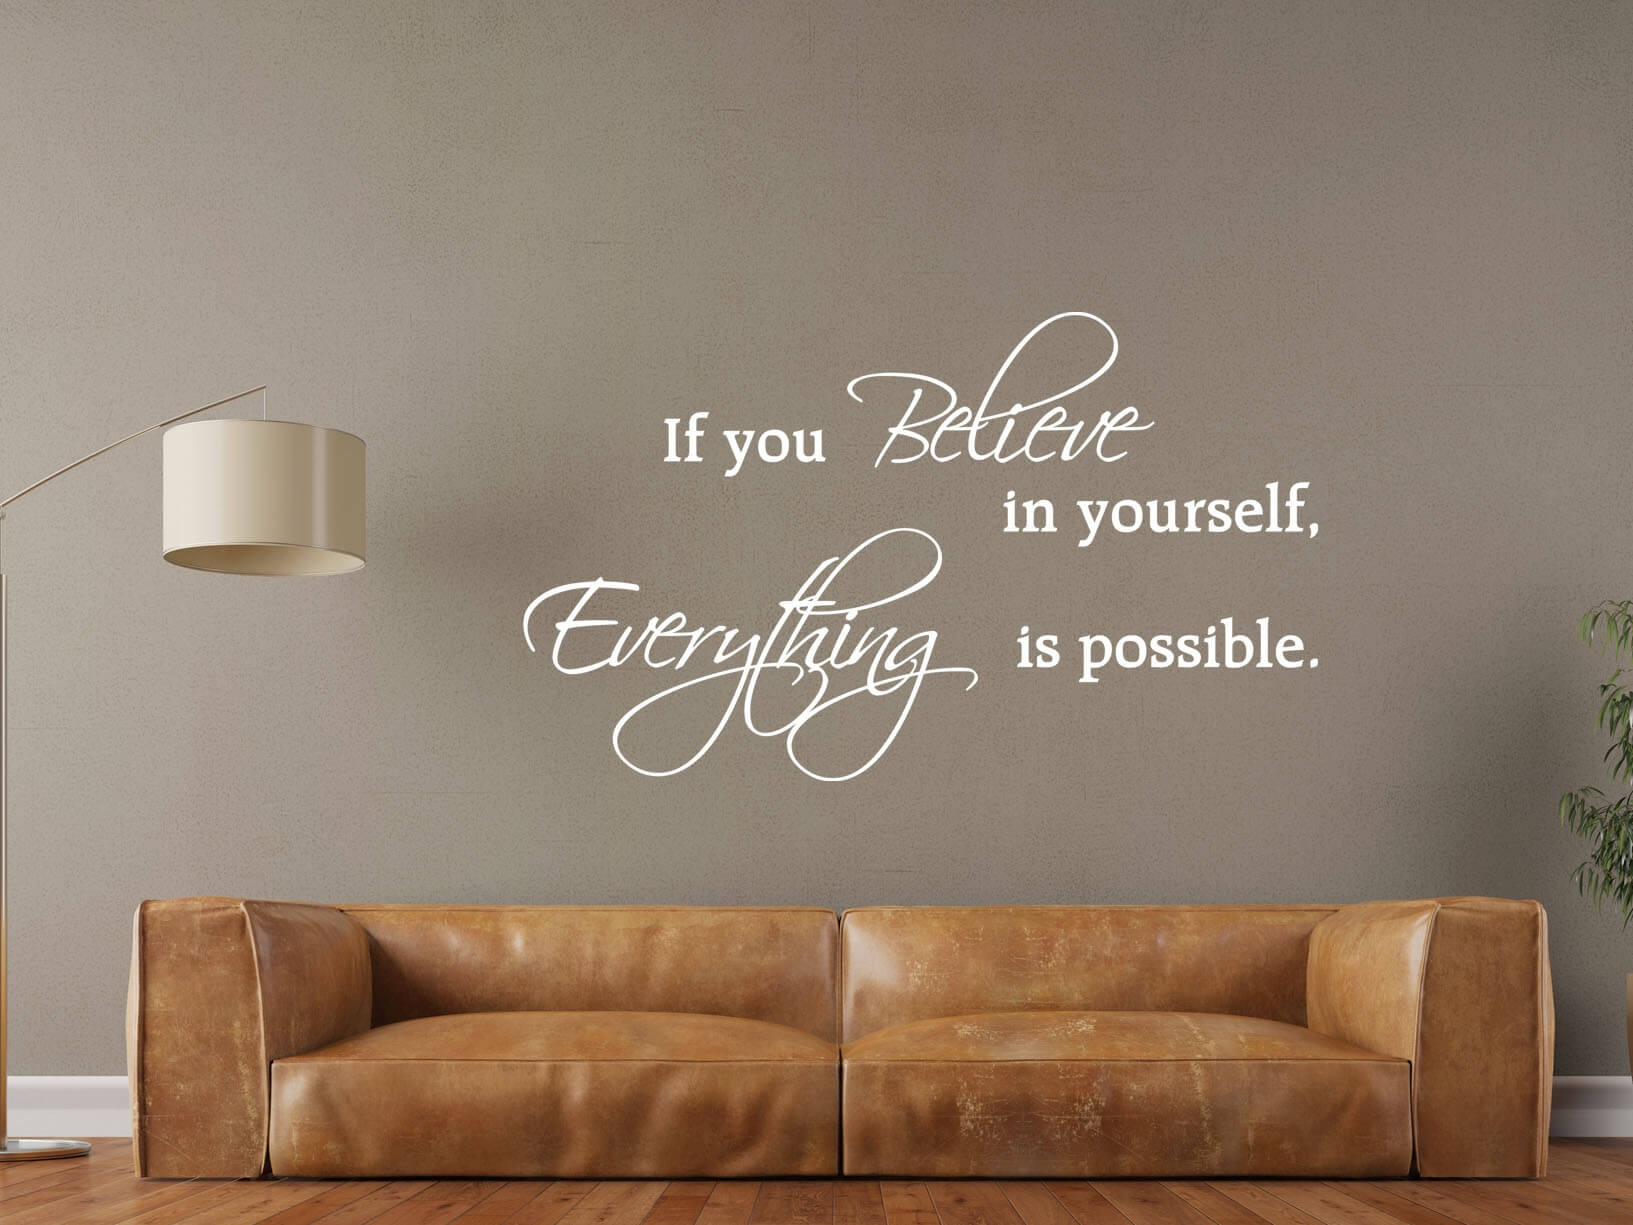 muursticker quotif you believe in yourself everything is